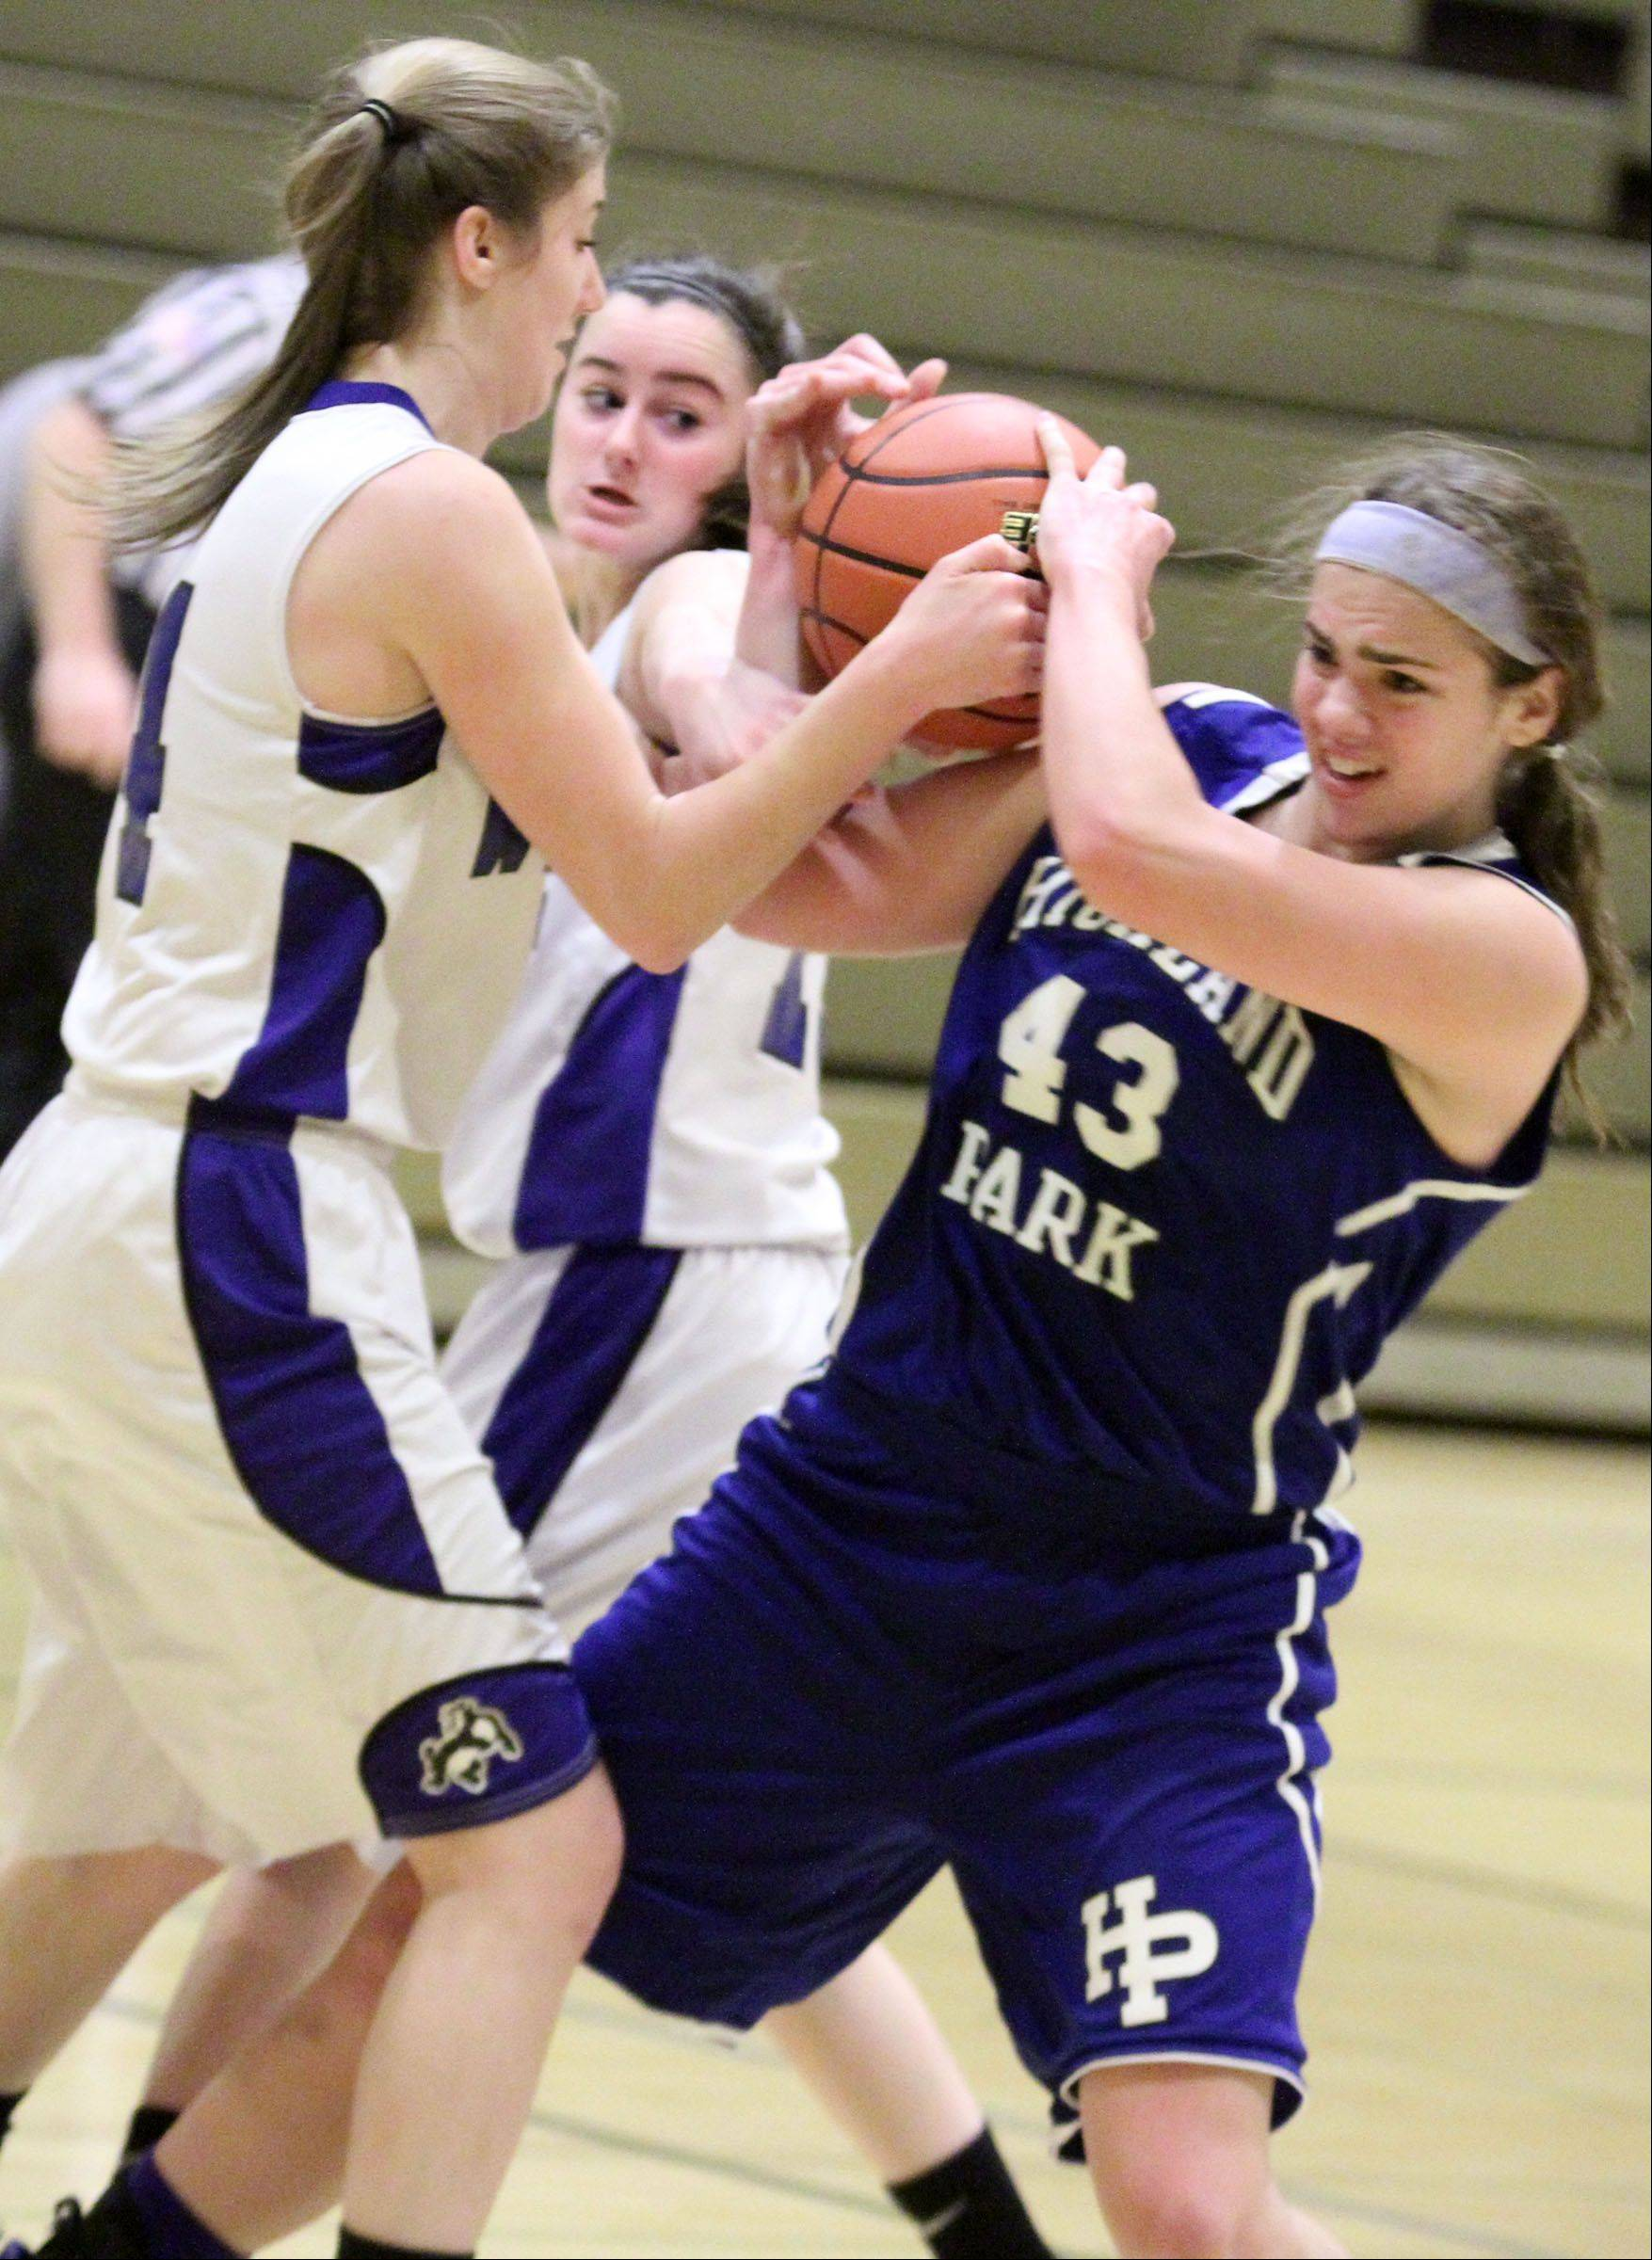 Wheeling's Hannah Dobrowski and Highland Park's Lena Munzer struggle for possession of the ball at Wheeling on Thursday.